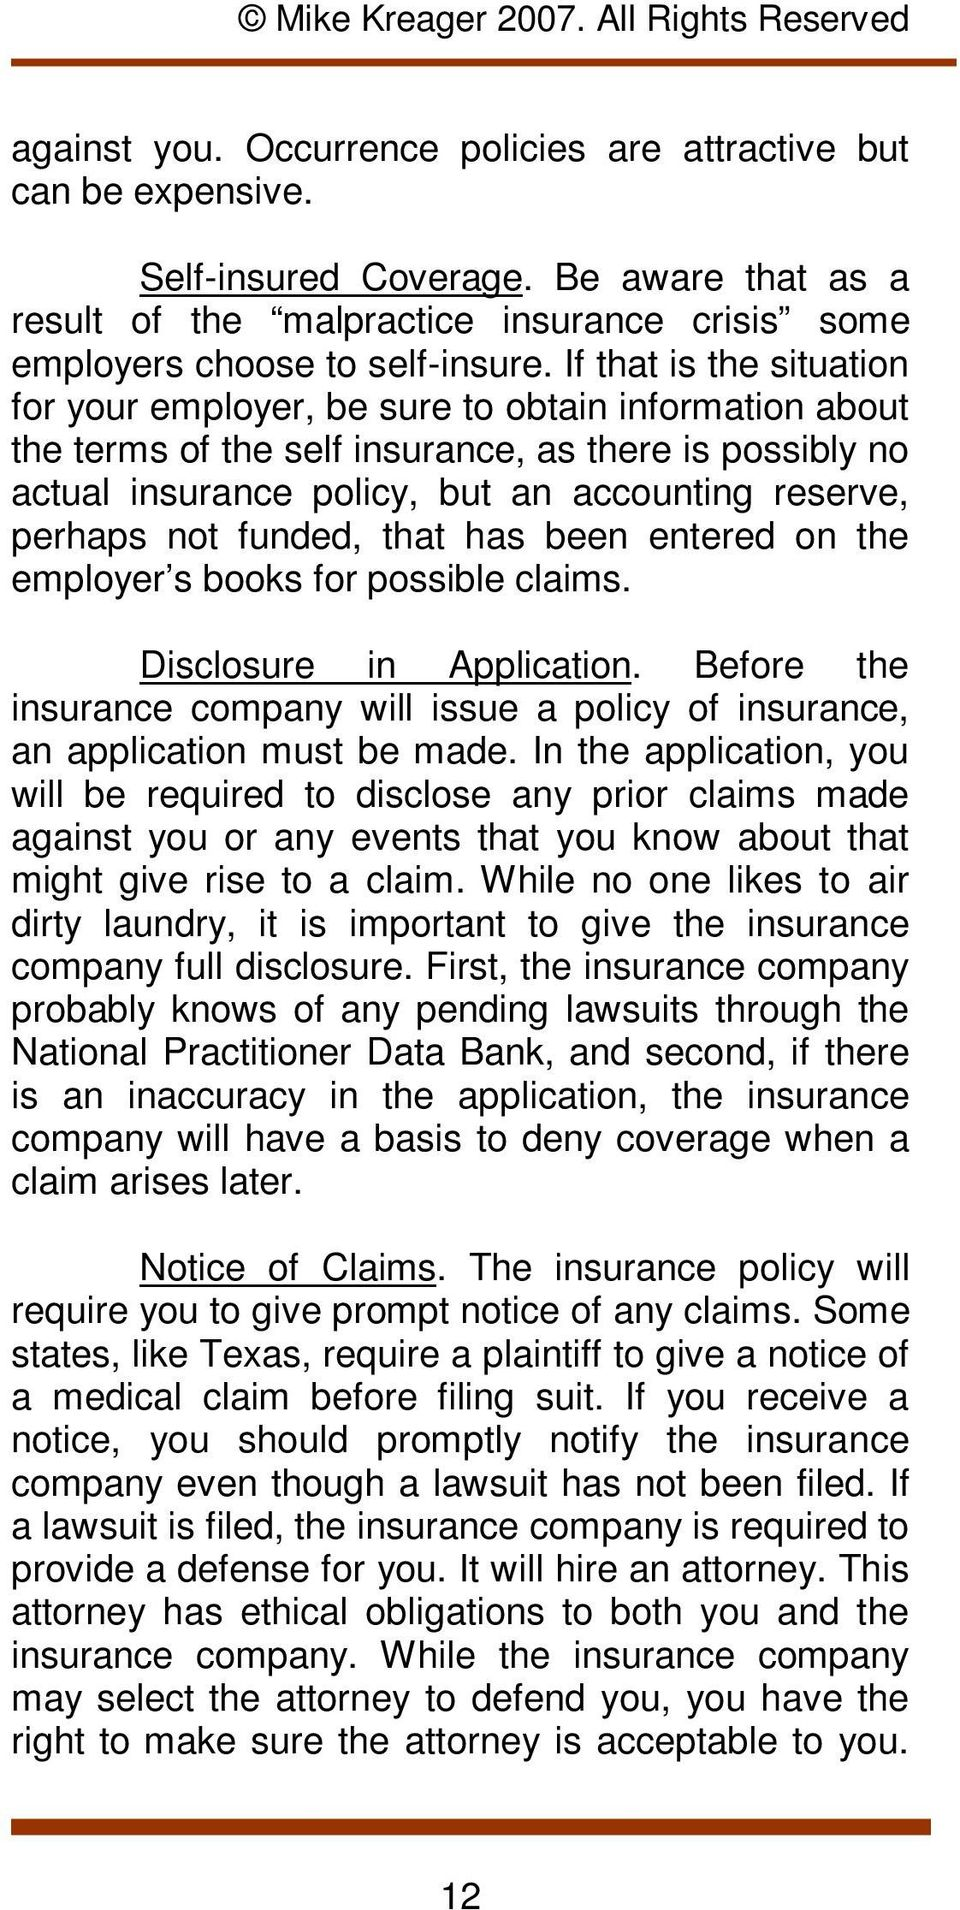 not funded, that has been entered on the employer s books for possible claims. Disclosure in Application. Before the insurance company will issue a policy of insurance, an application must be made.